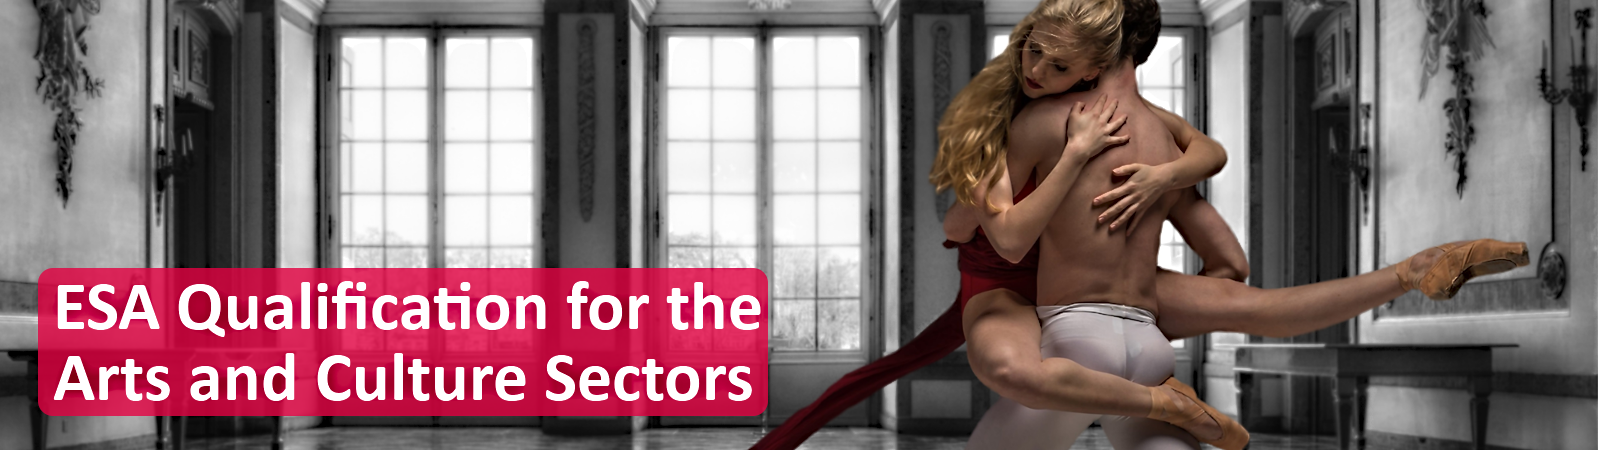 ESA Qualification for the arts web slider banner